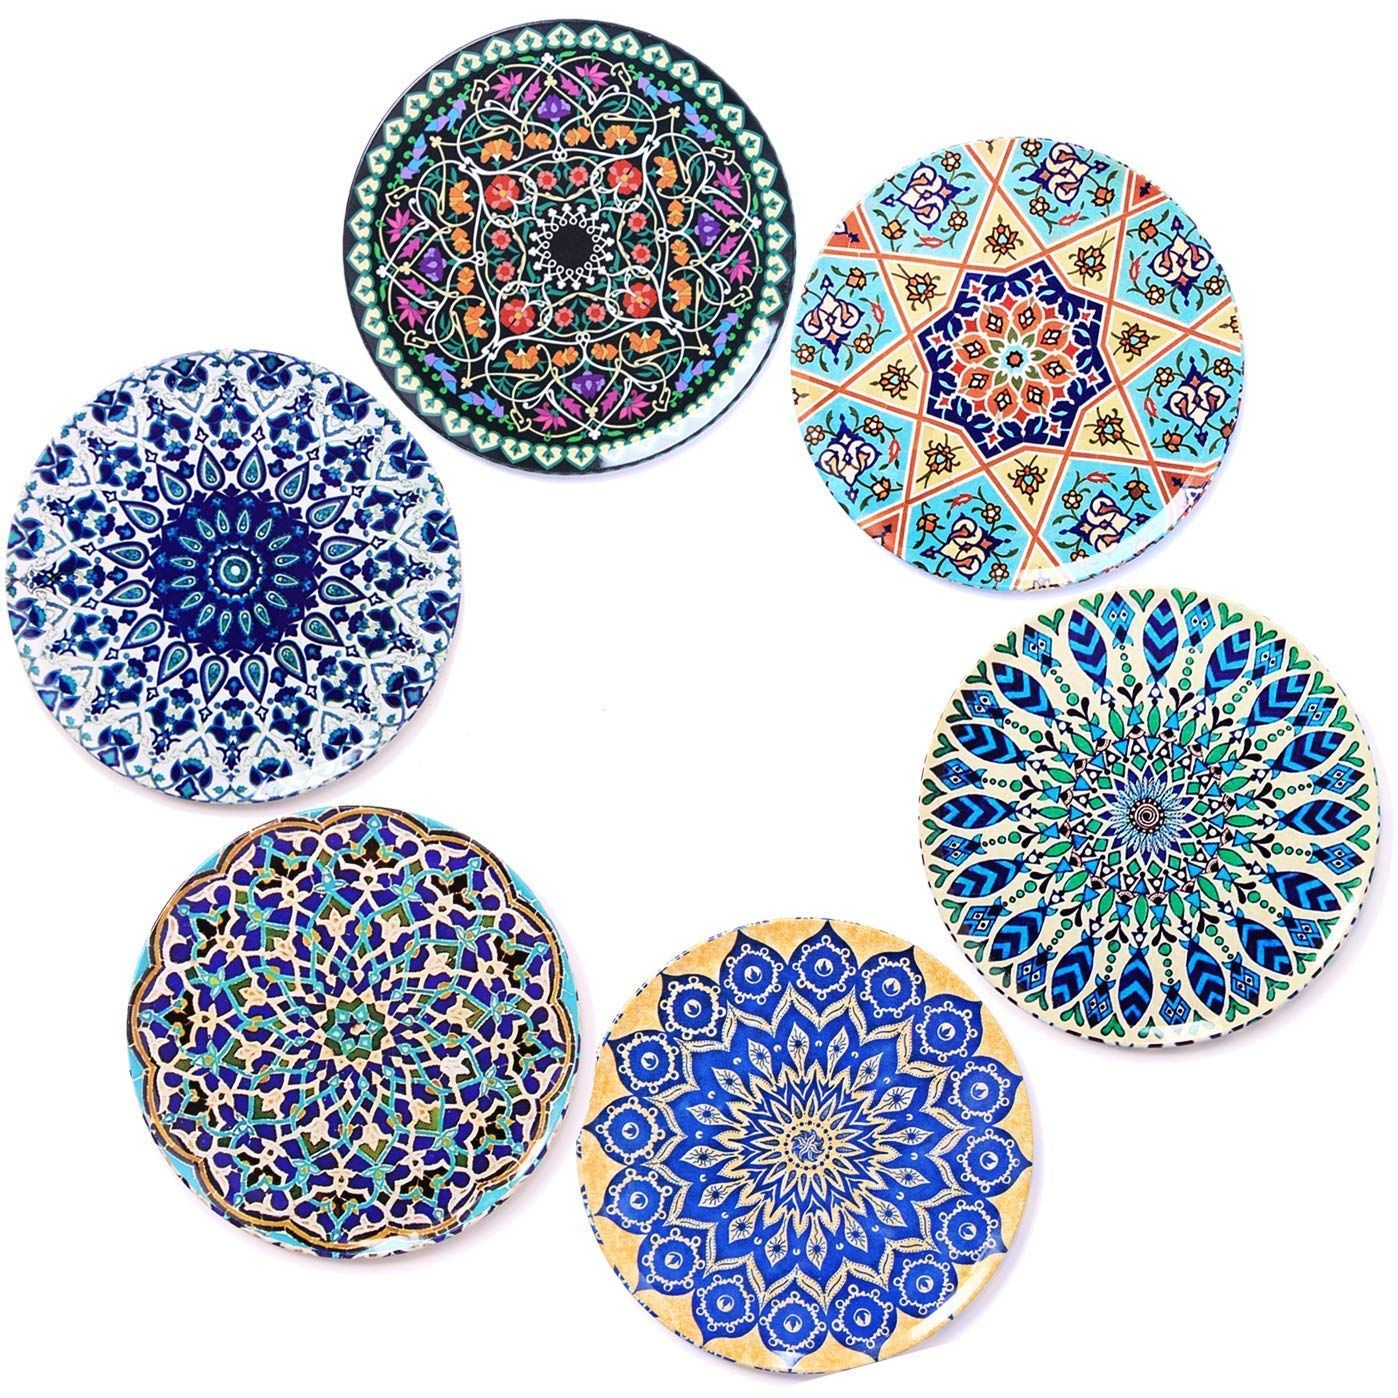 Bohoria Premium Design Coasters Set Of 6 Decorative Coasters For Glass Cups Vases Candles On Their Dining Table Made Of Wo Premium Design Candle S Coaster Set